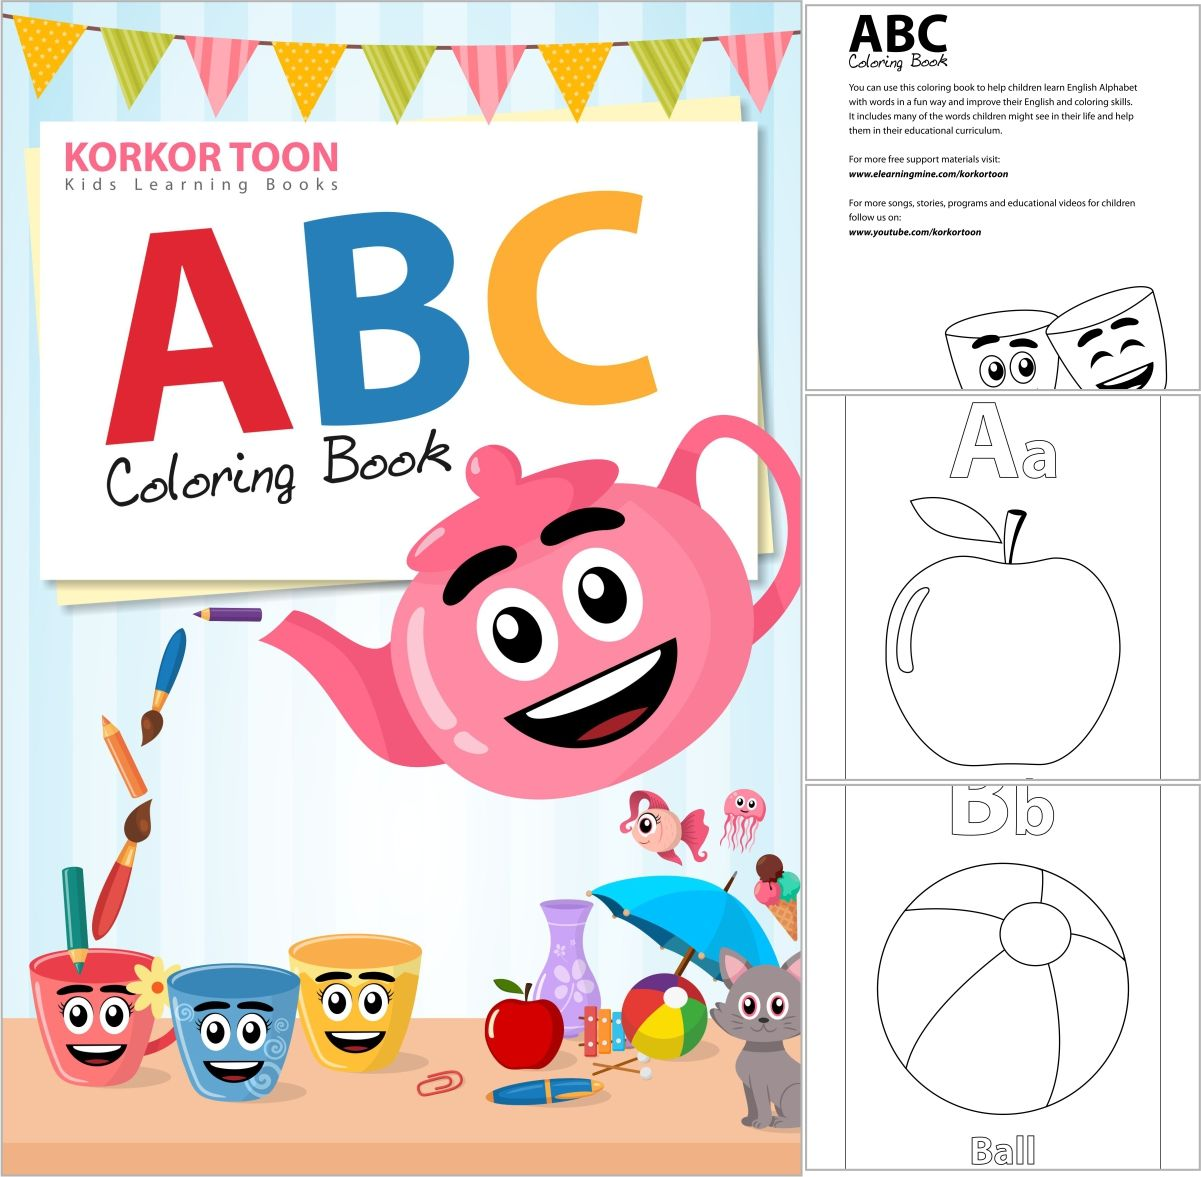 Abc Coloring Book For Kids Abc Coloring Coloring Books Kids Coloring Books